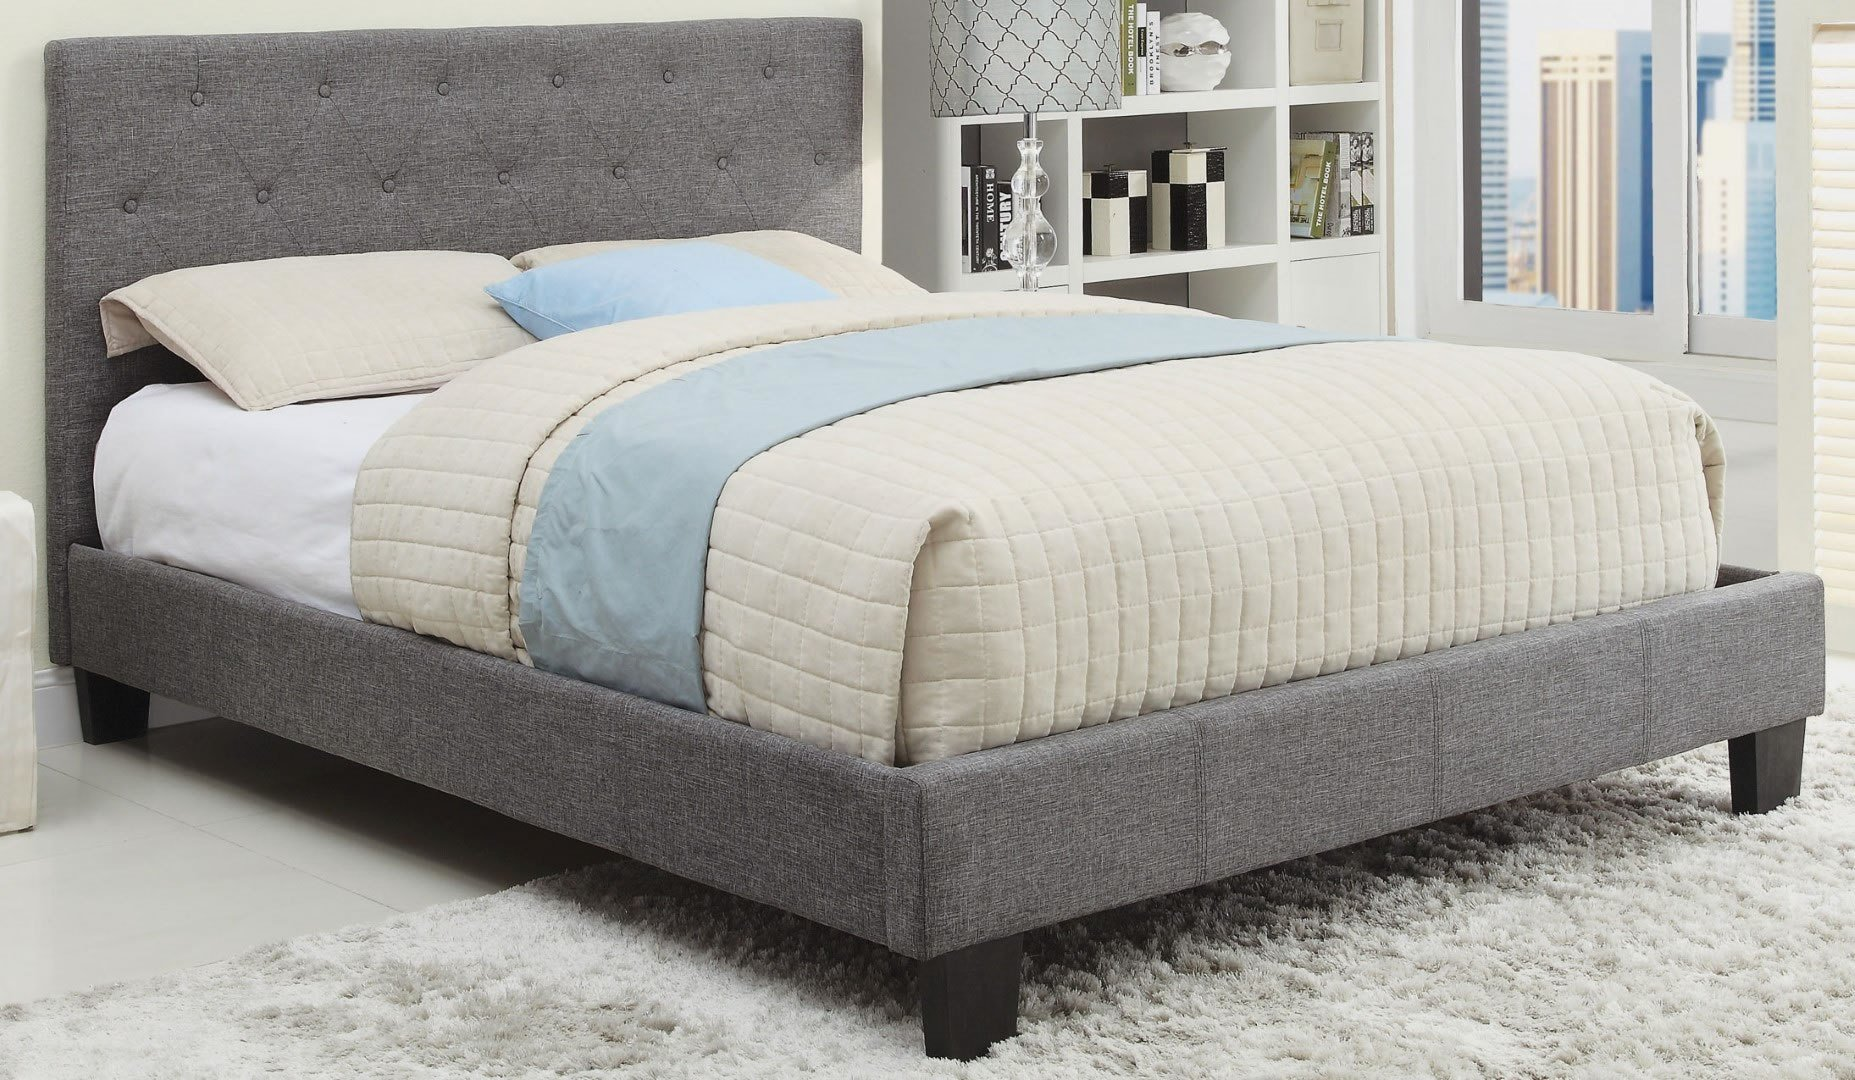 Best Whi Summit Queen Bed Grey 101 469Q Gy Modern With Pictures